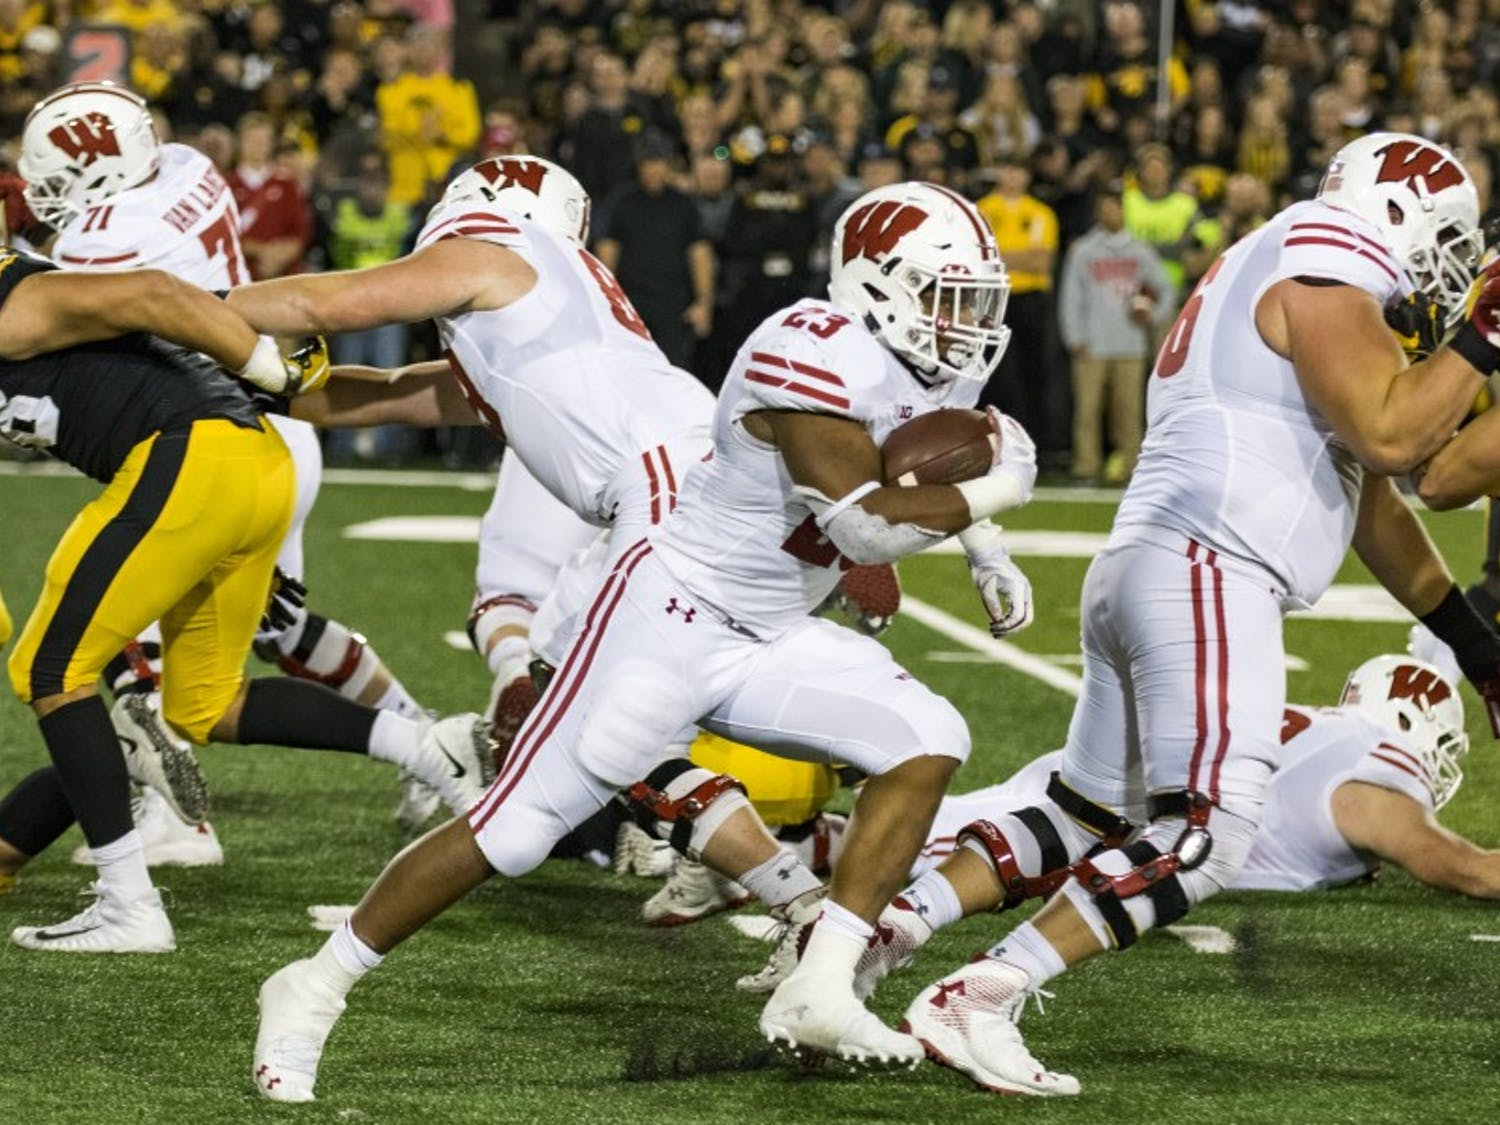 Jonathan Taylor and the Wisconsin offense will be looking to bounce back from a letdown performance against Northwestern, where Taylor gained just 46 yards.